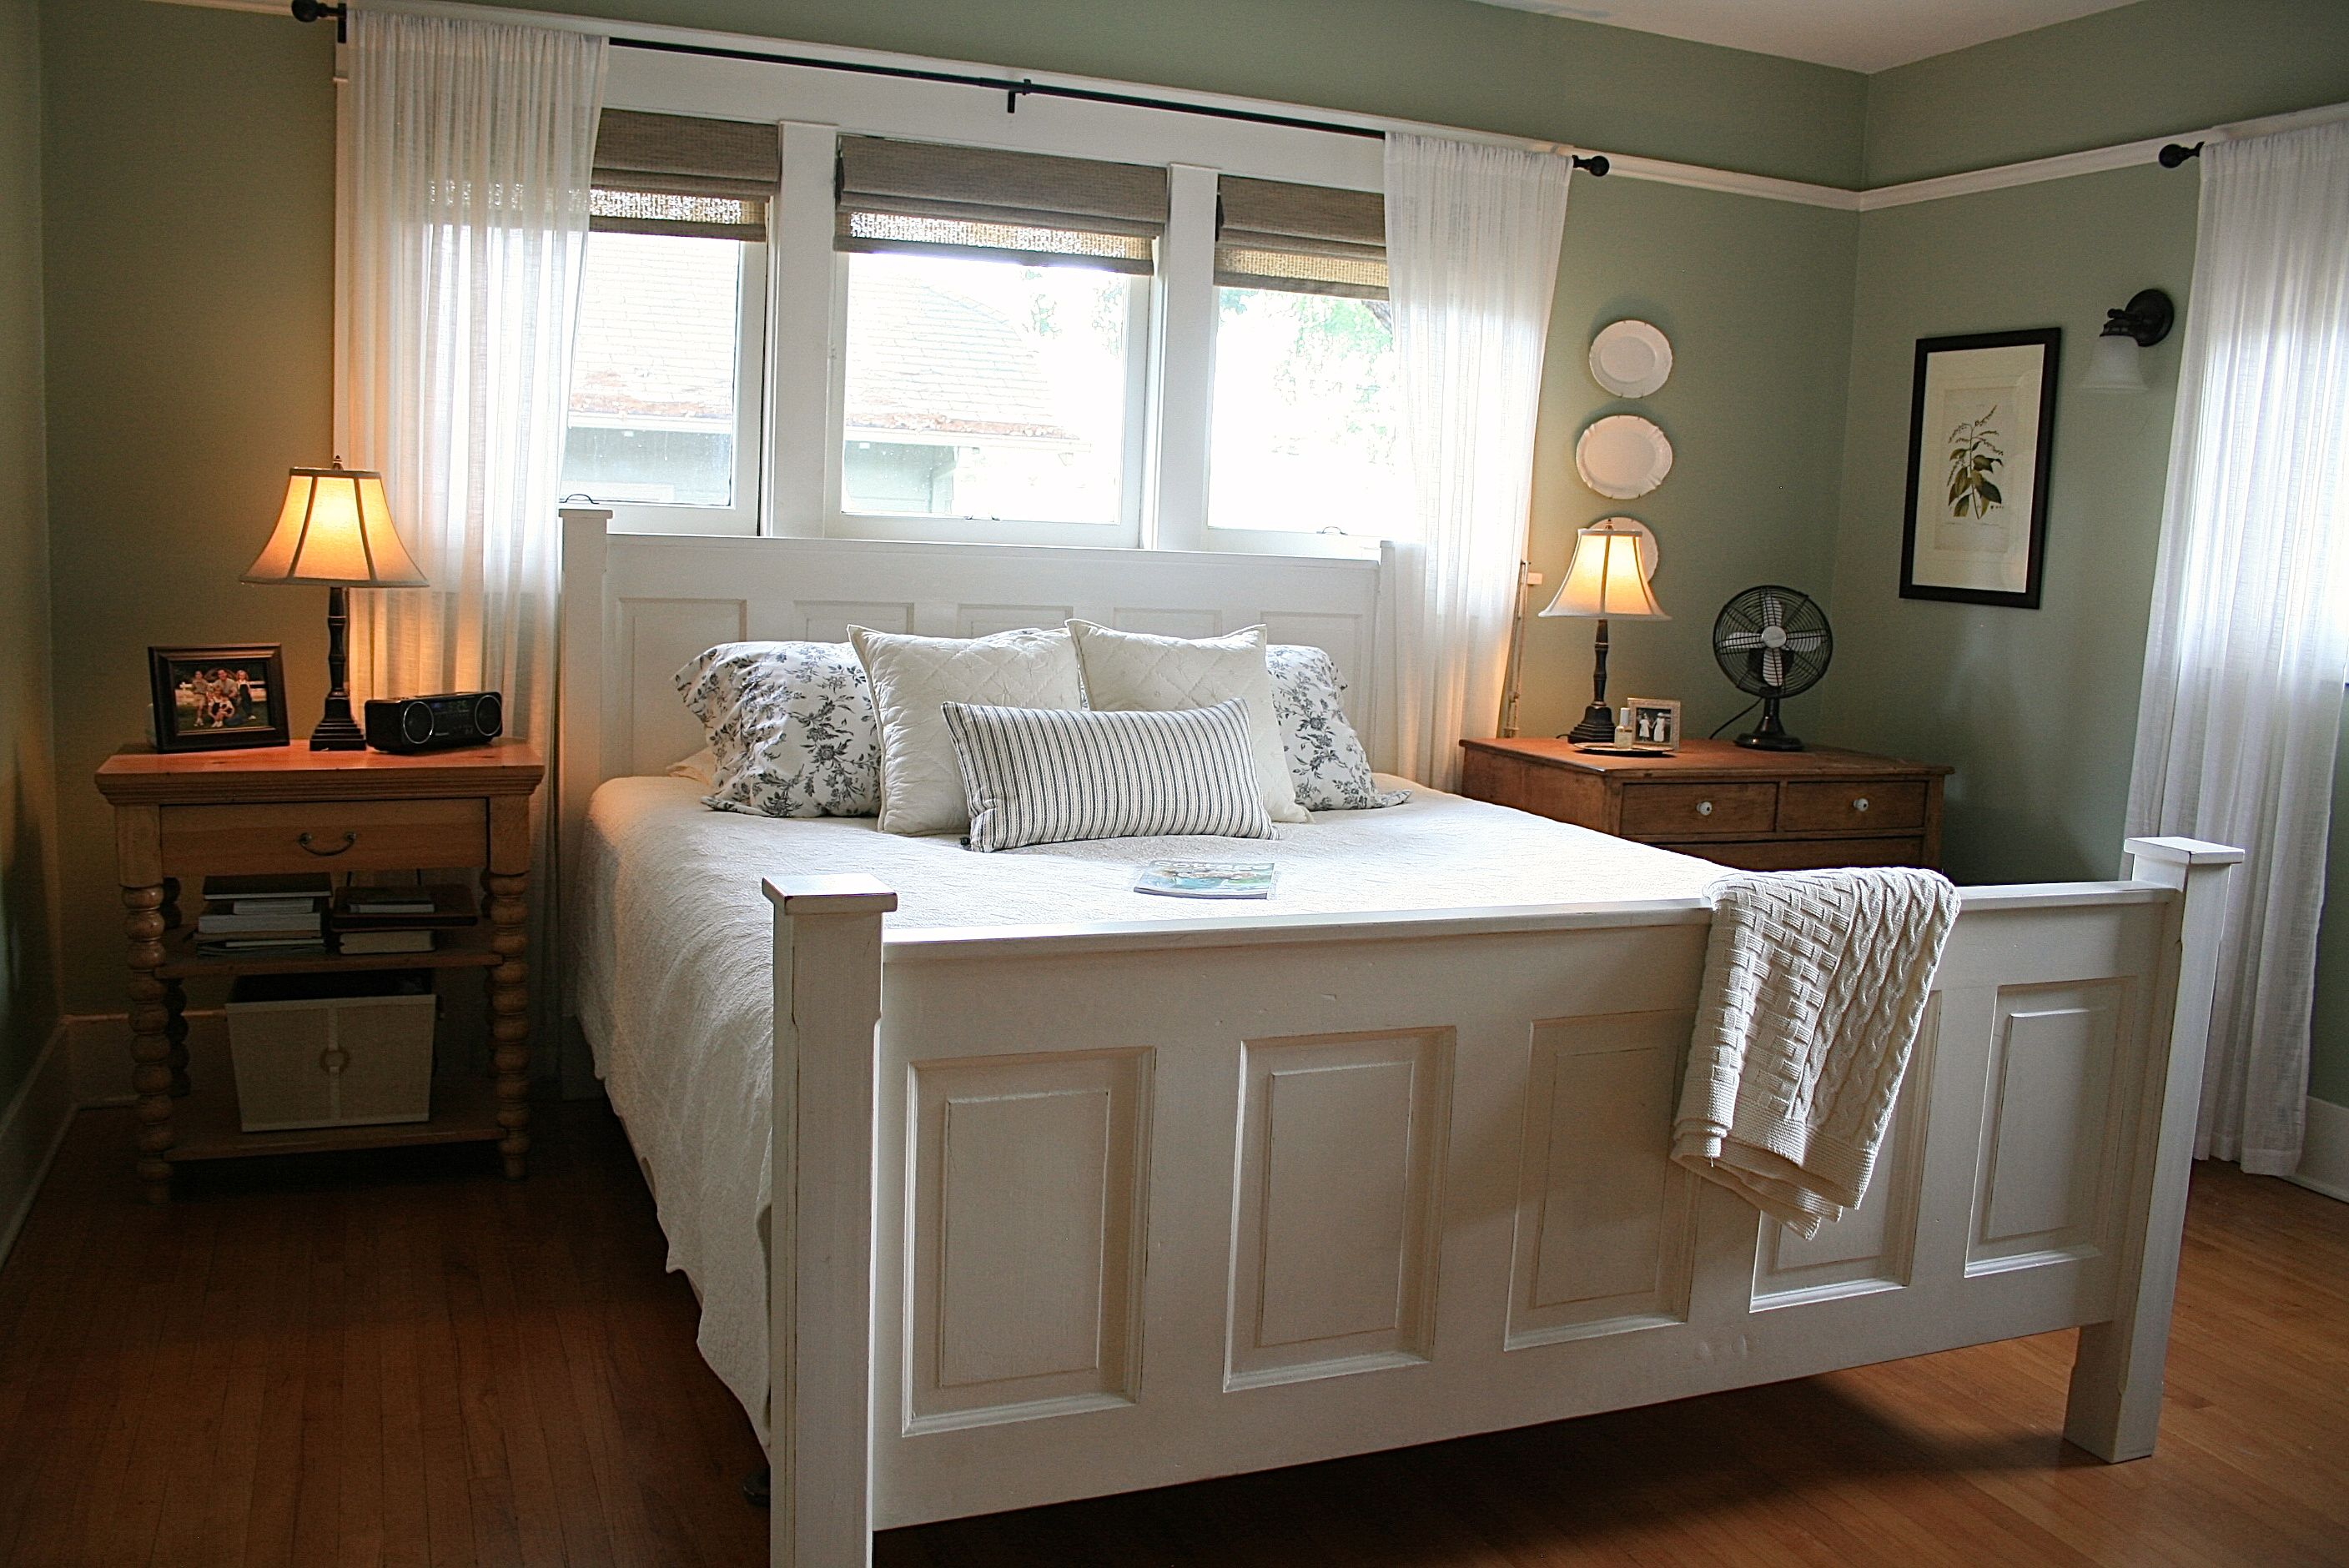 old doors used as a headboard footboard add character to this